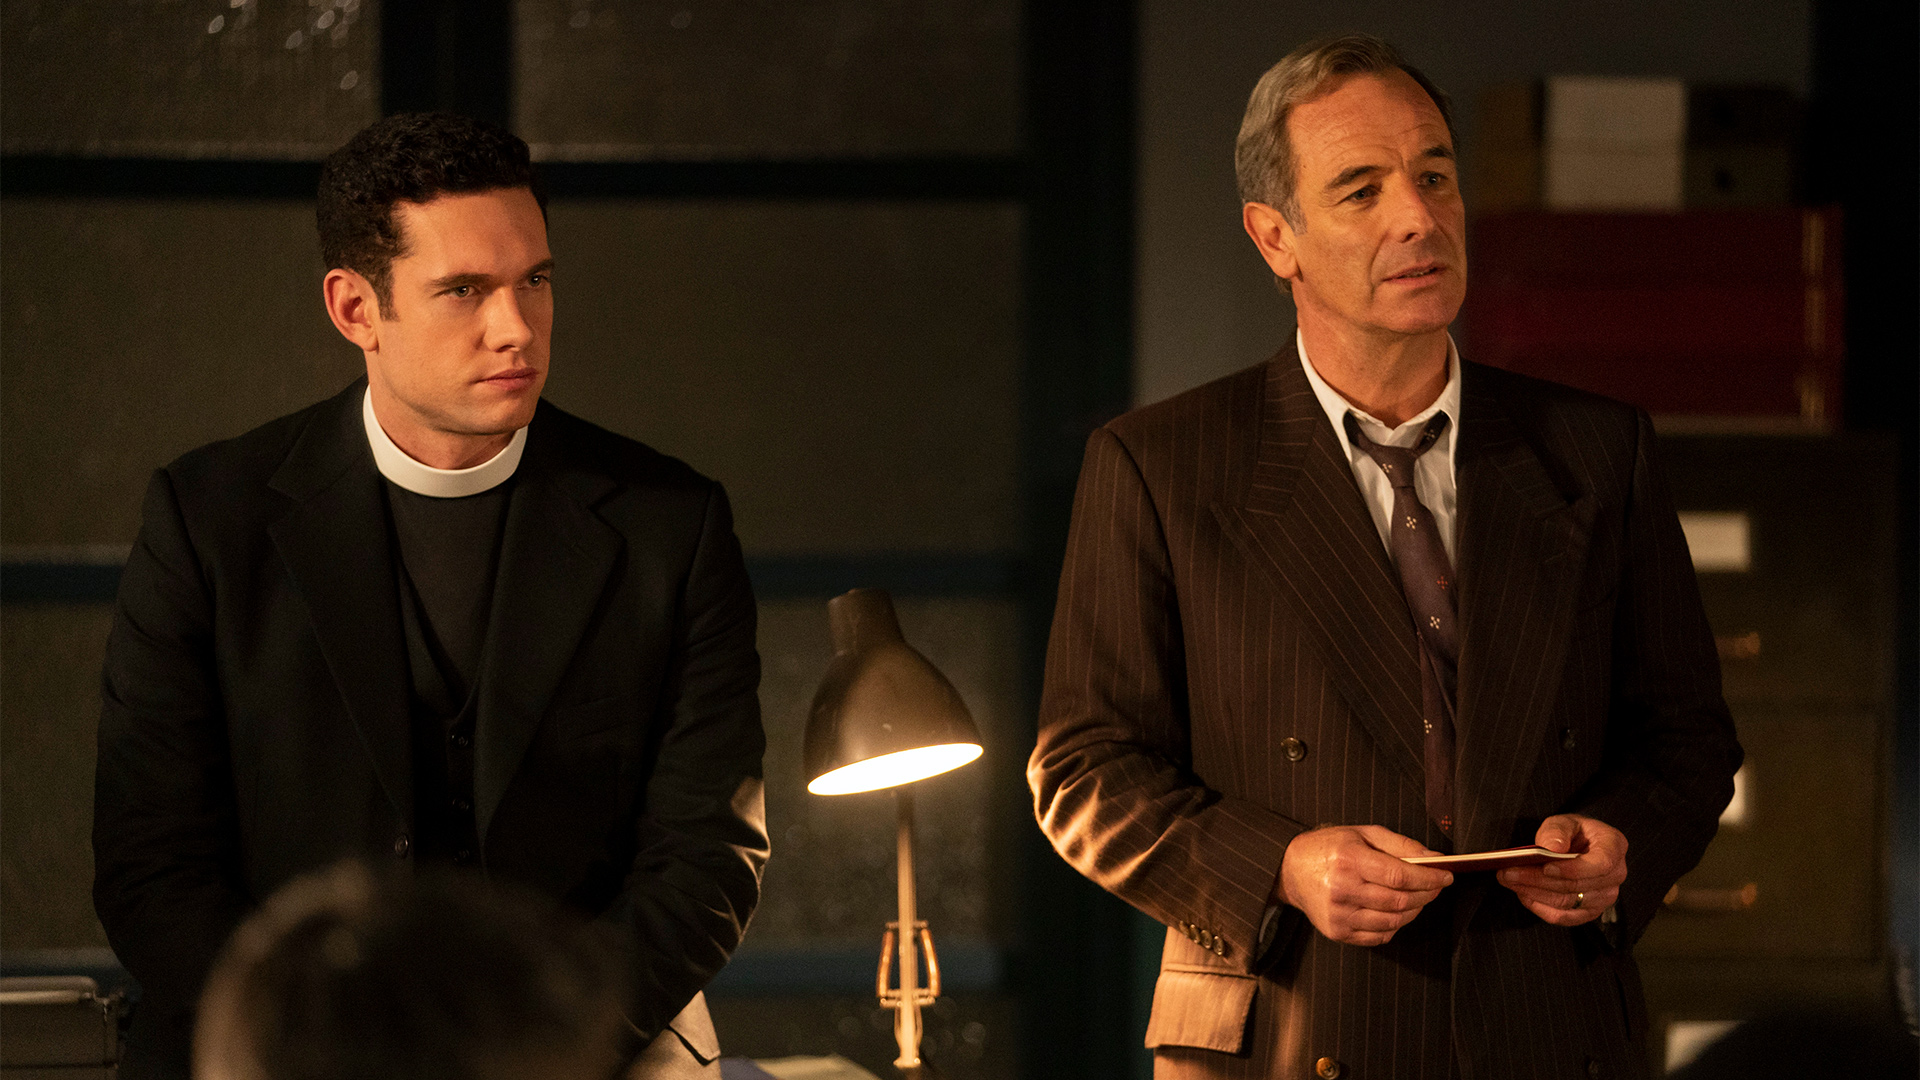 Tom Brittney as Rev. Will Davenport and Robson Green as DI Geordie Keating